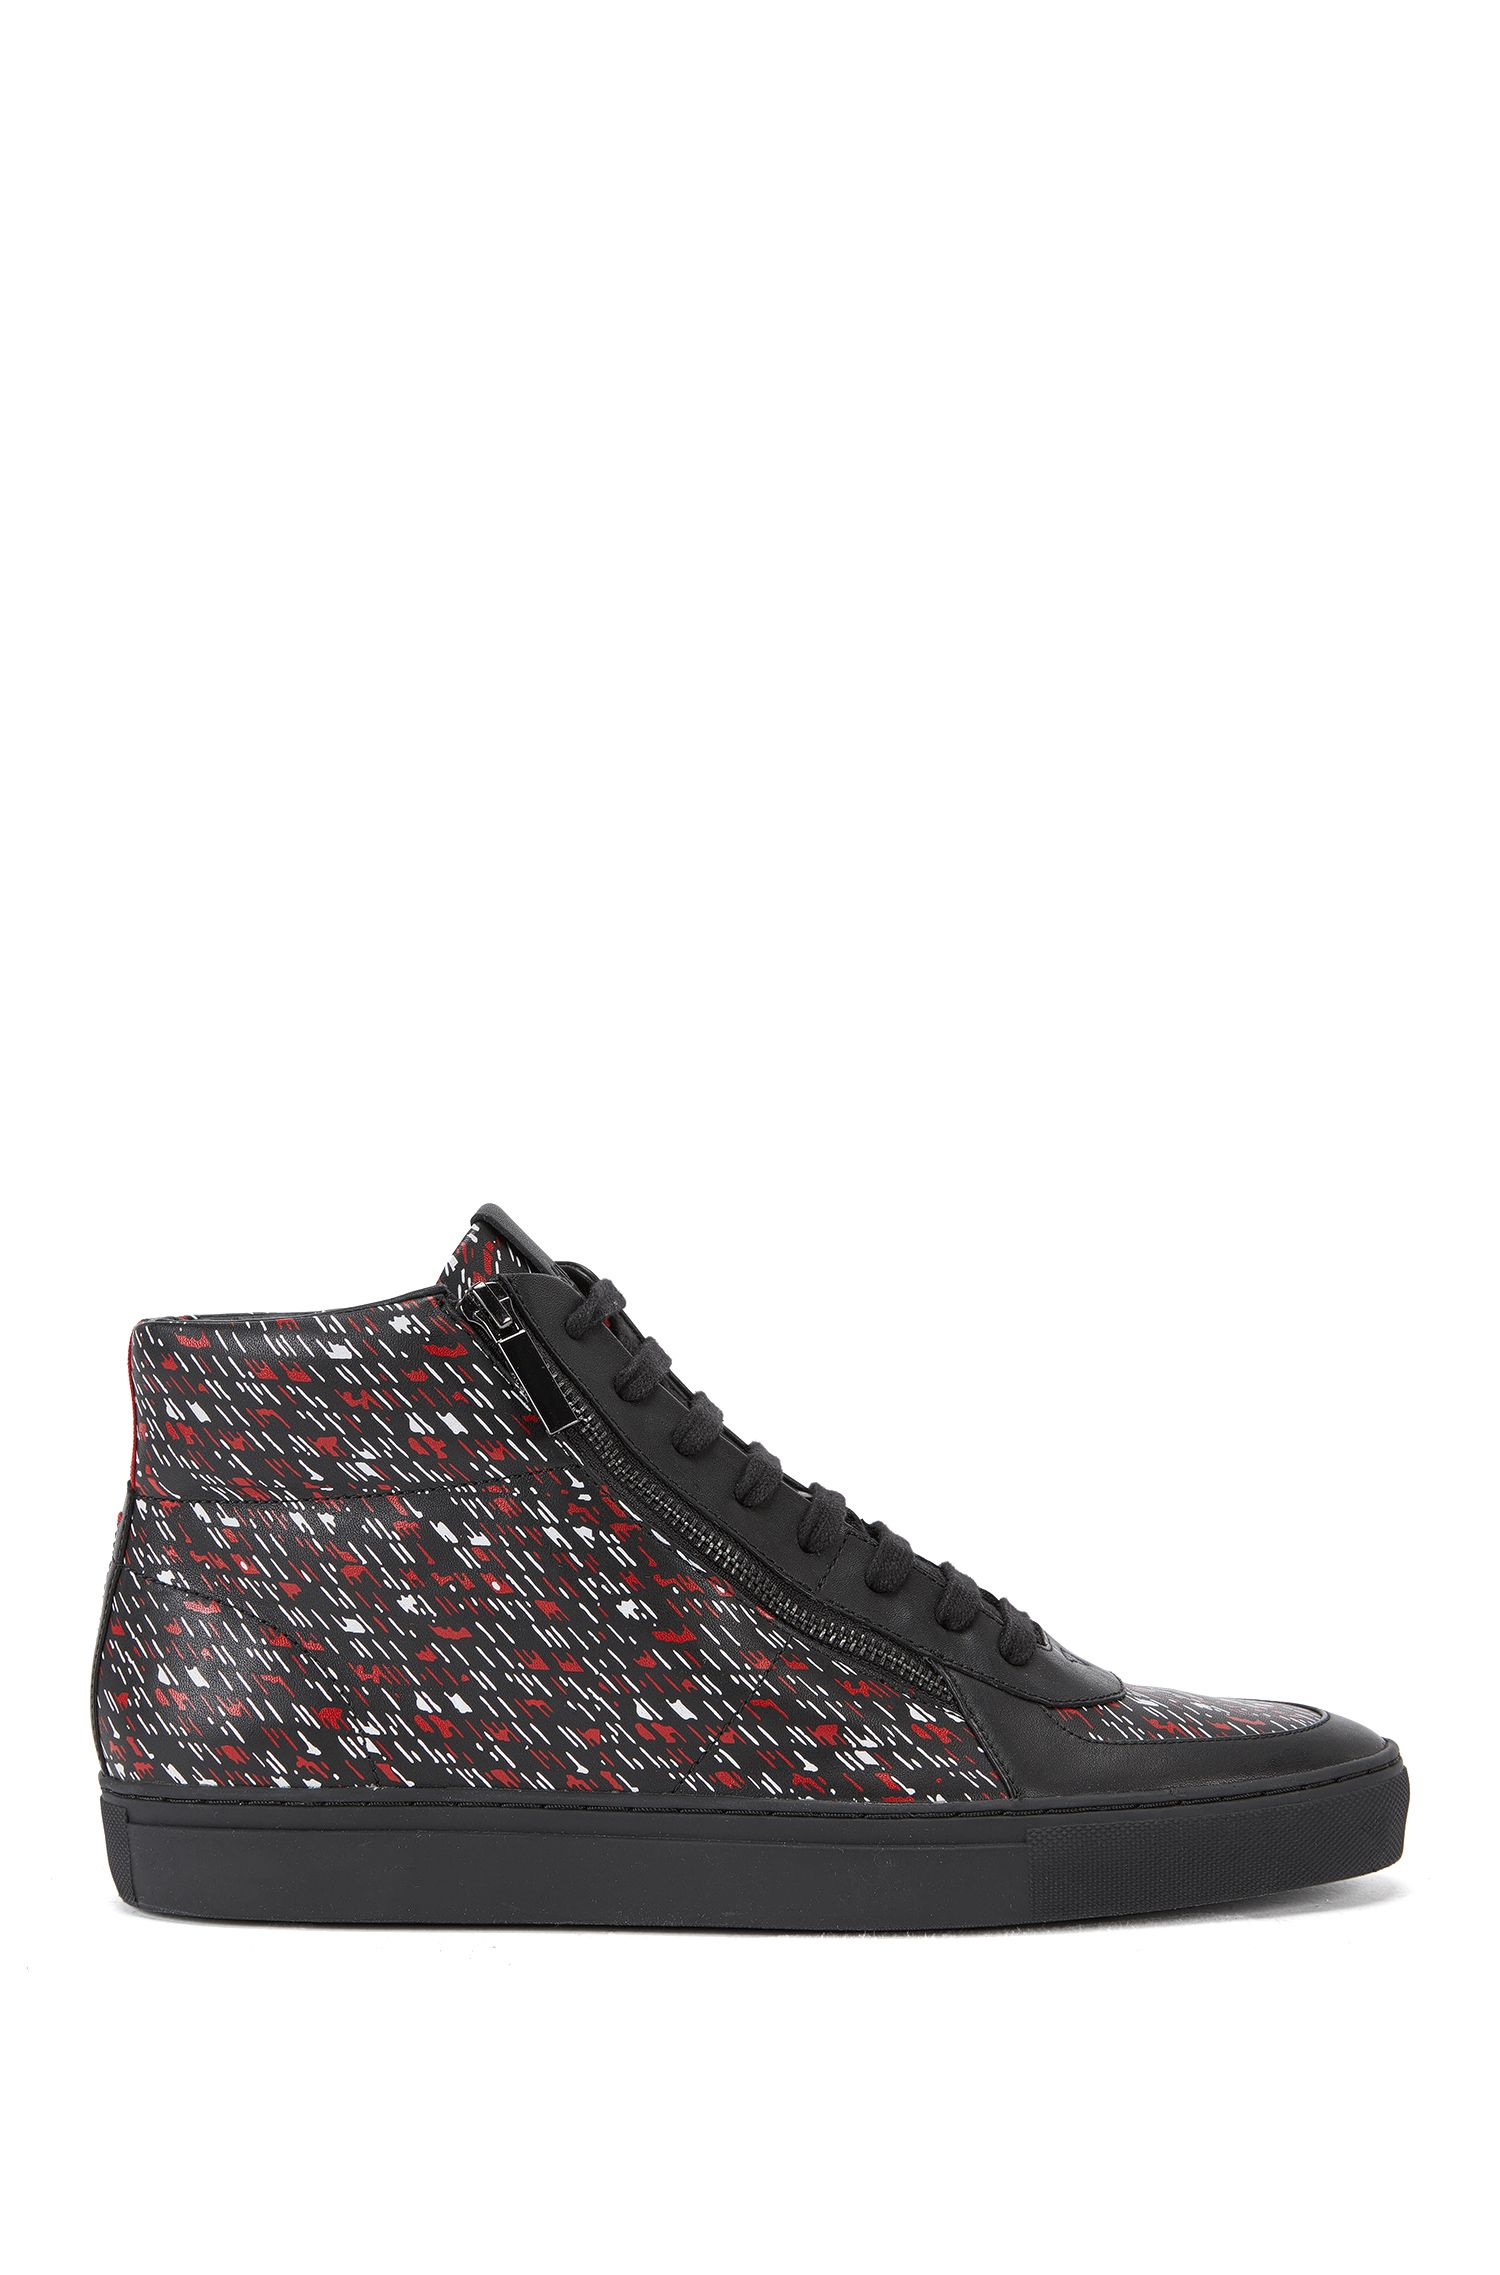 Printed Leather High Top Sneaker   Futurism Hito Pr